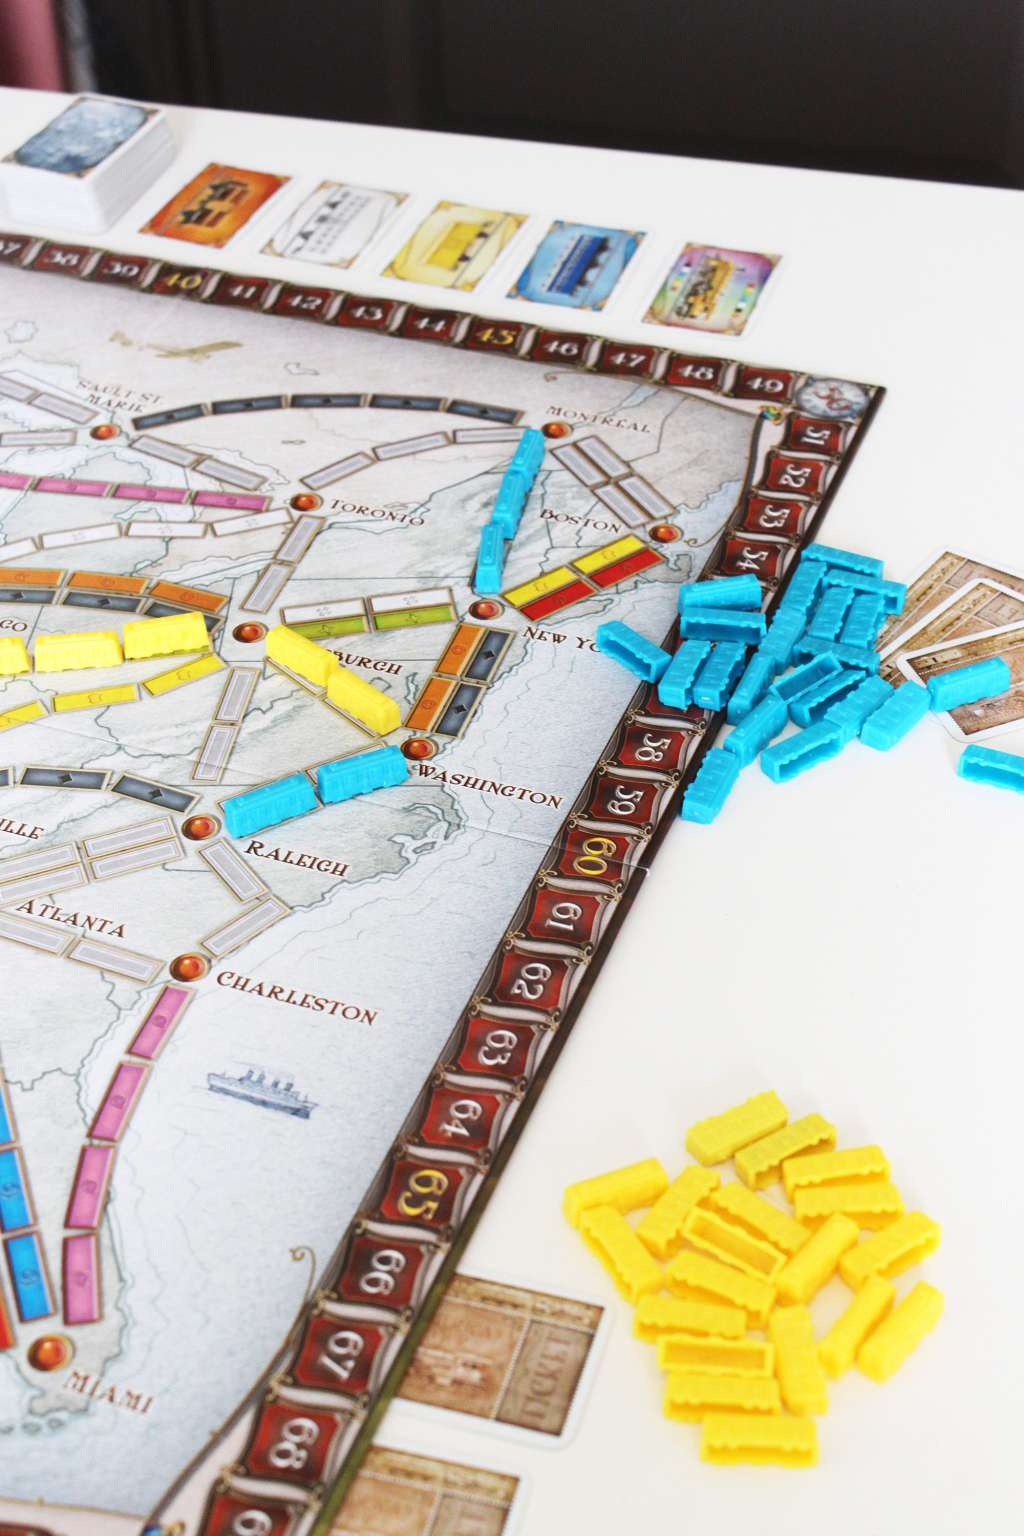 The Best Board Games You've Probably Never Played Before